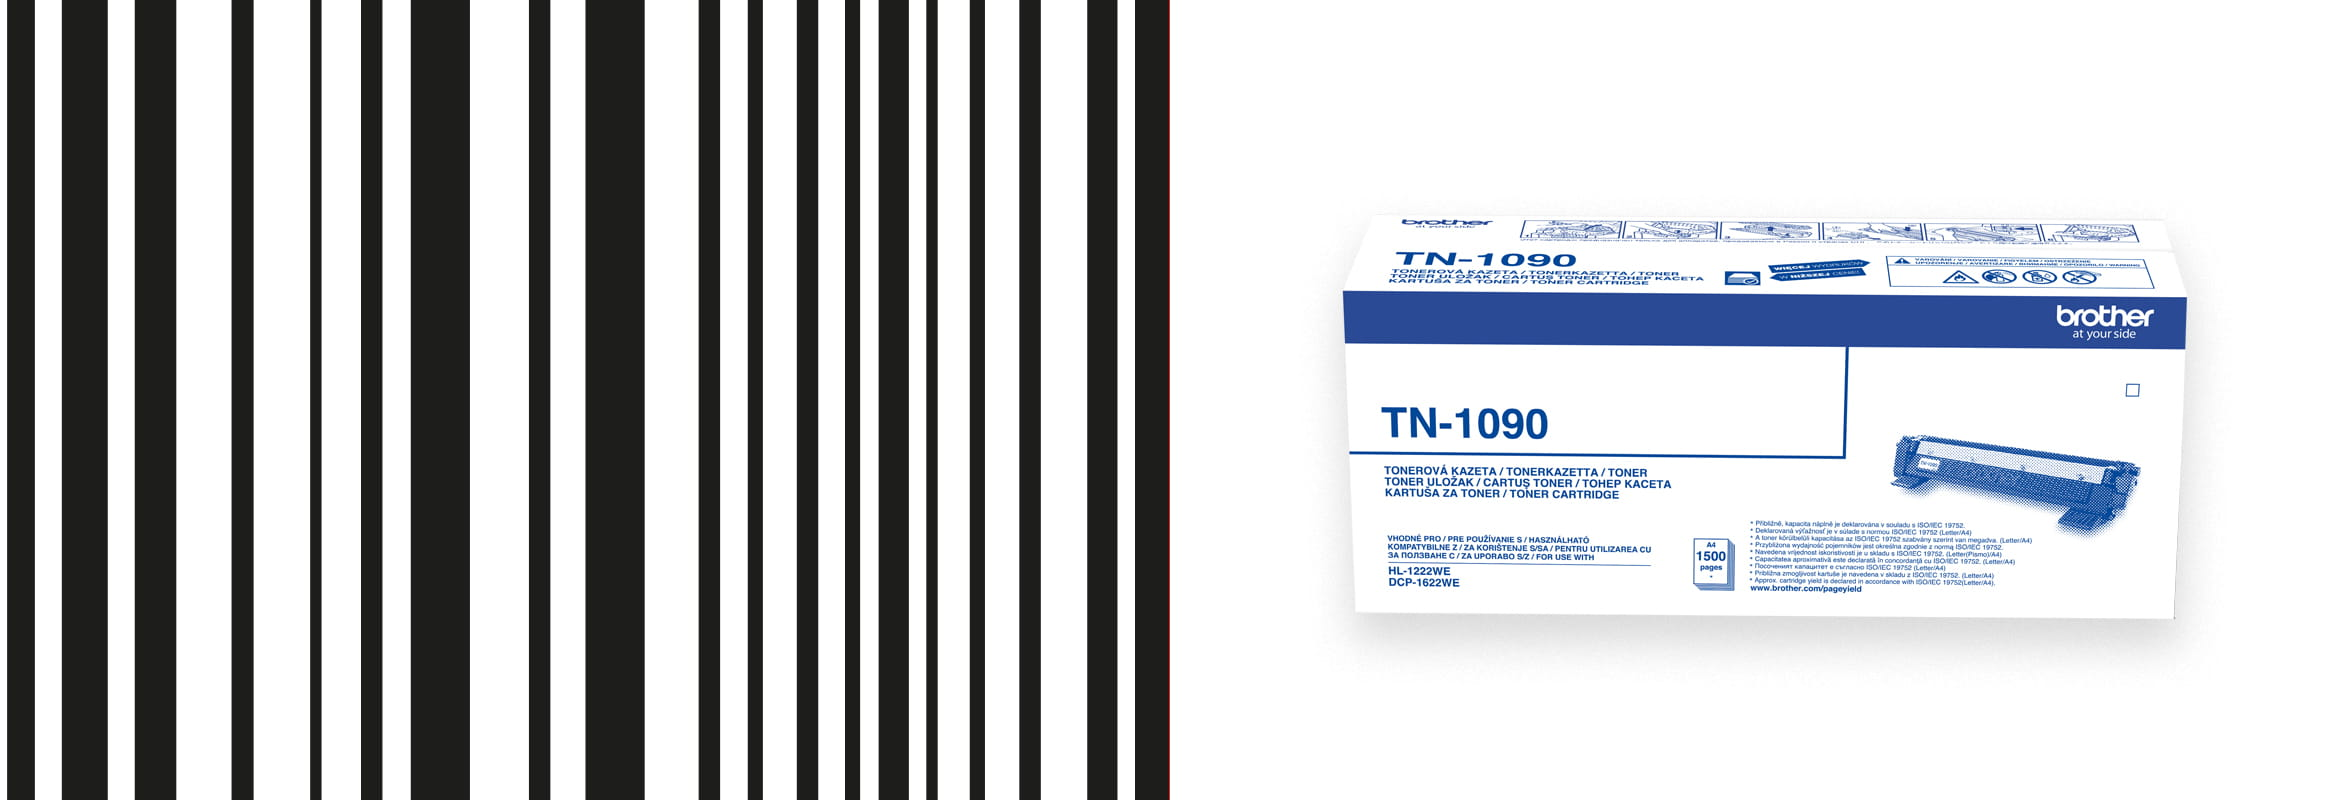 tonex box TN-1090 with barcode